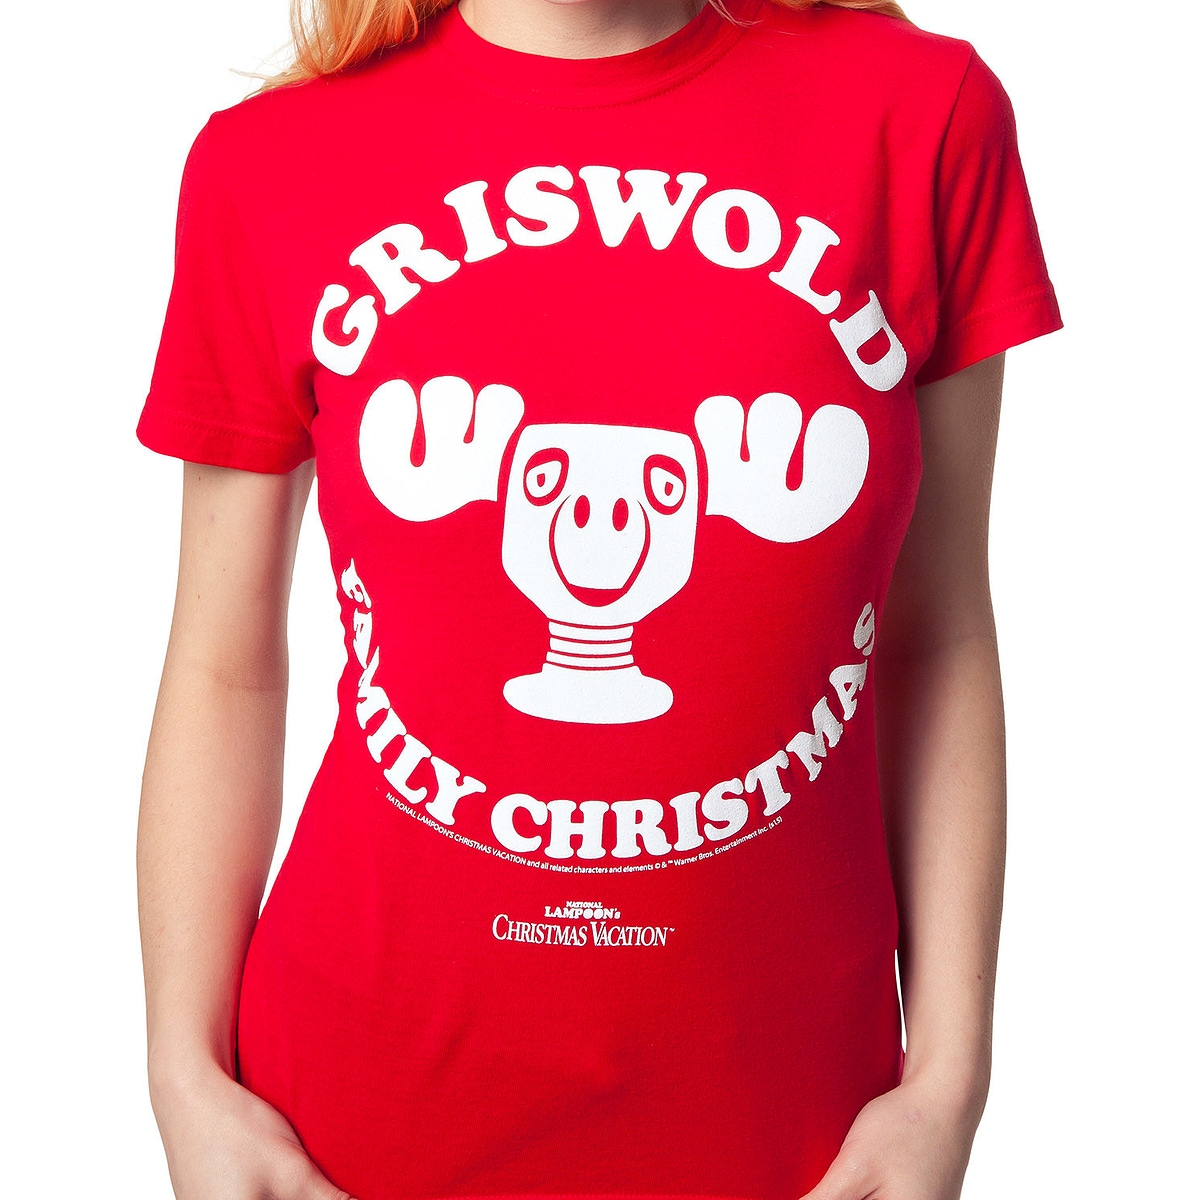 griswold family national lampoons christmas vacation ladies t shirt popcult wear